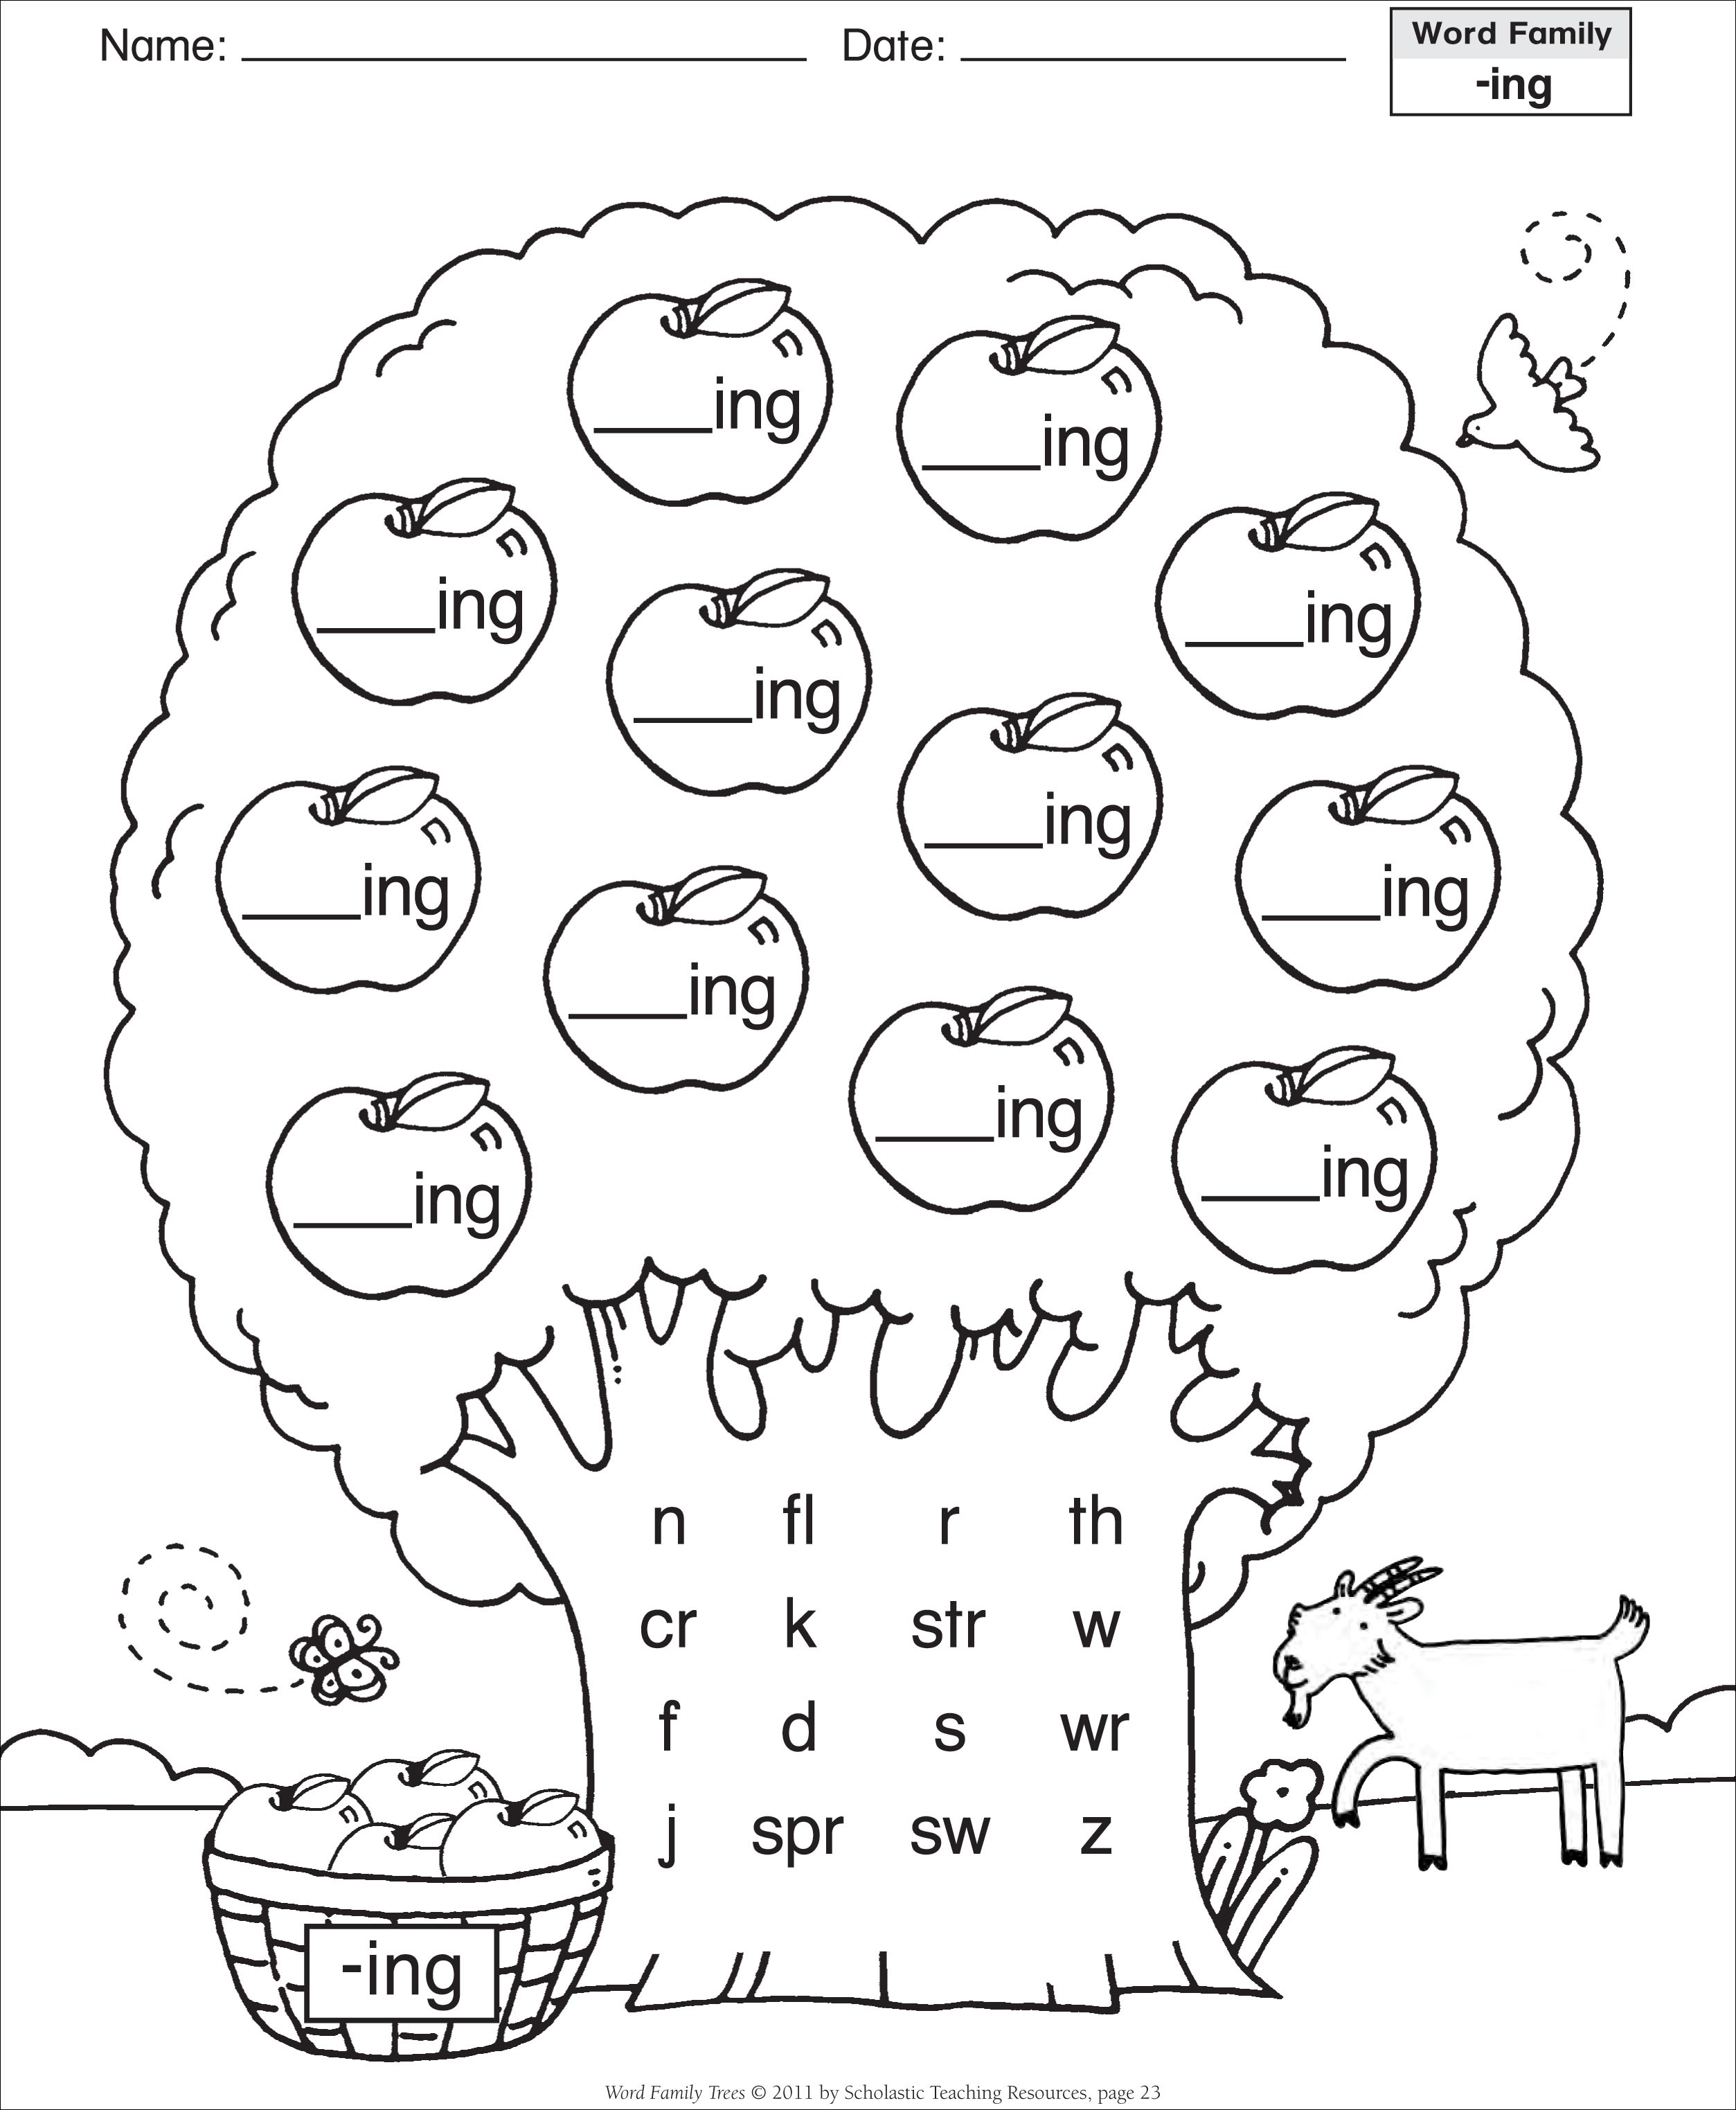 ing word family worksheets Gallery